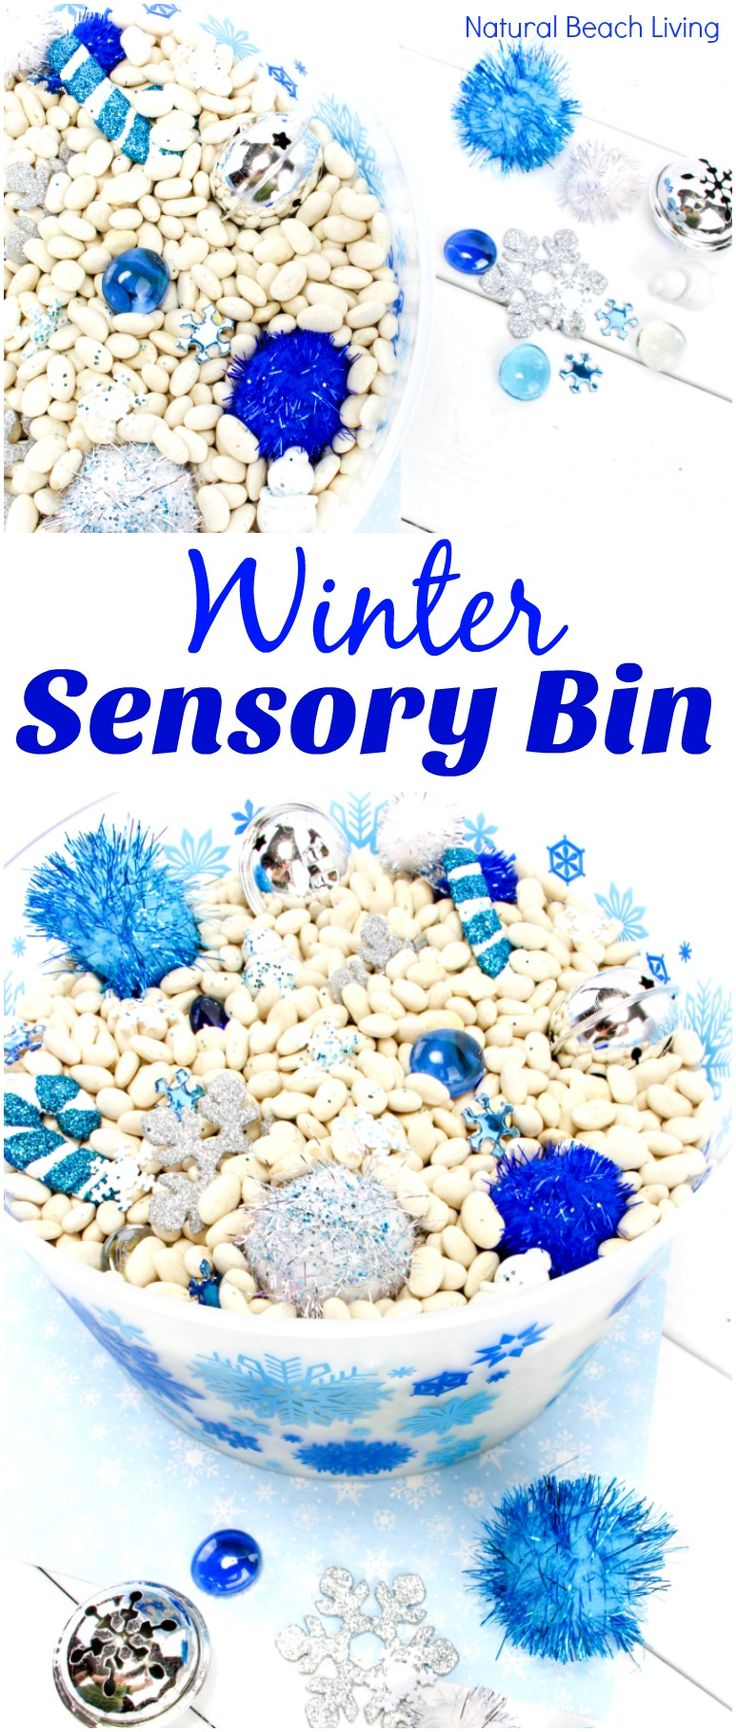 Easy Winter Sensory Bin for Toddlers and Preschoolers, Perfect for arctic and winter wonderland activities, Winter sensory table ideas, Winter sensory ideas, Snow sensory bin, Make it a Winter sensory tray, Snow Sensory Bin for Kindergarten, Exploring senses activities, Five in a Row, Five in a Row Vol. 1, Stopping by Woods on a Snowy Evening #sensorybin #sensoryplay #winteractivitiesforkids #fiveinarow